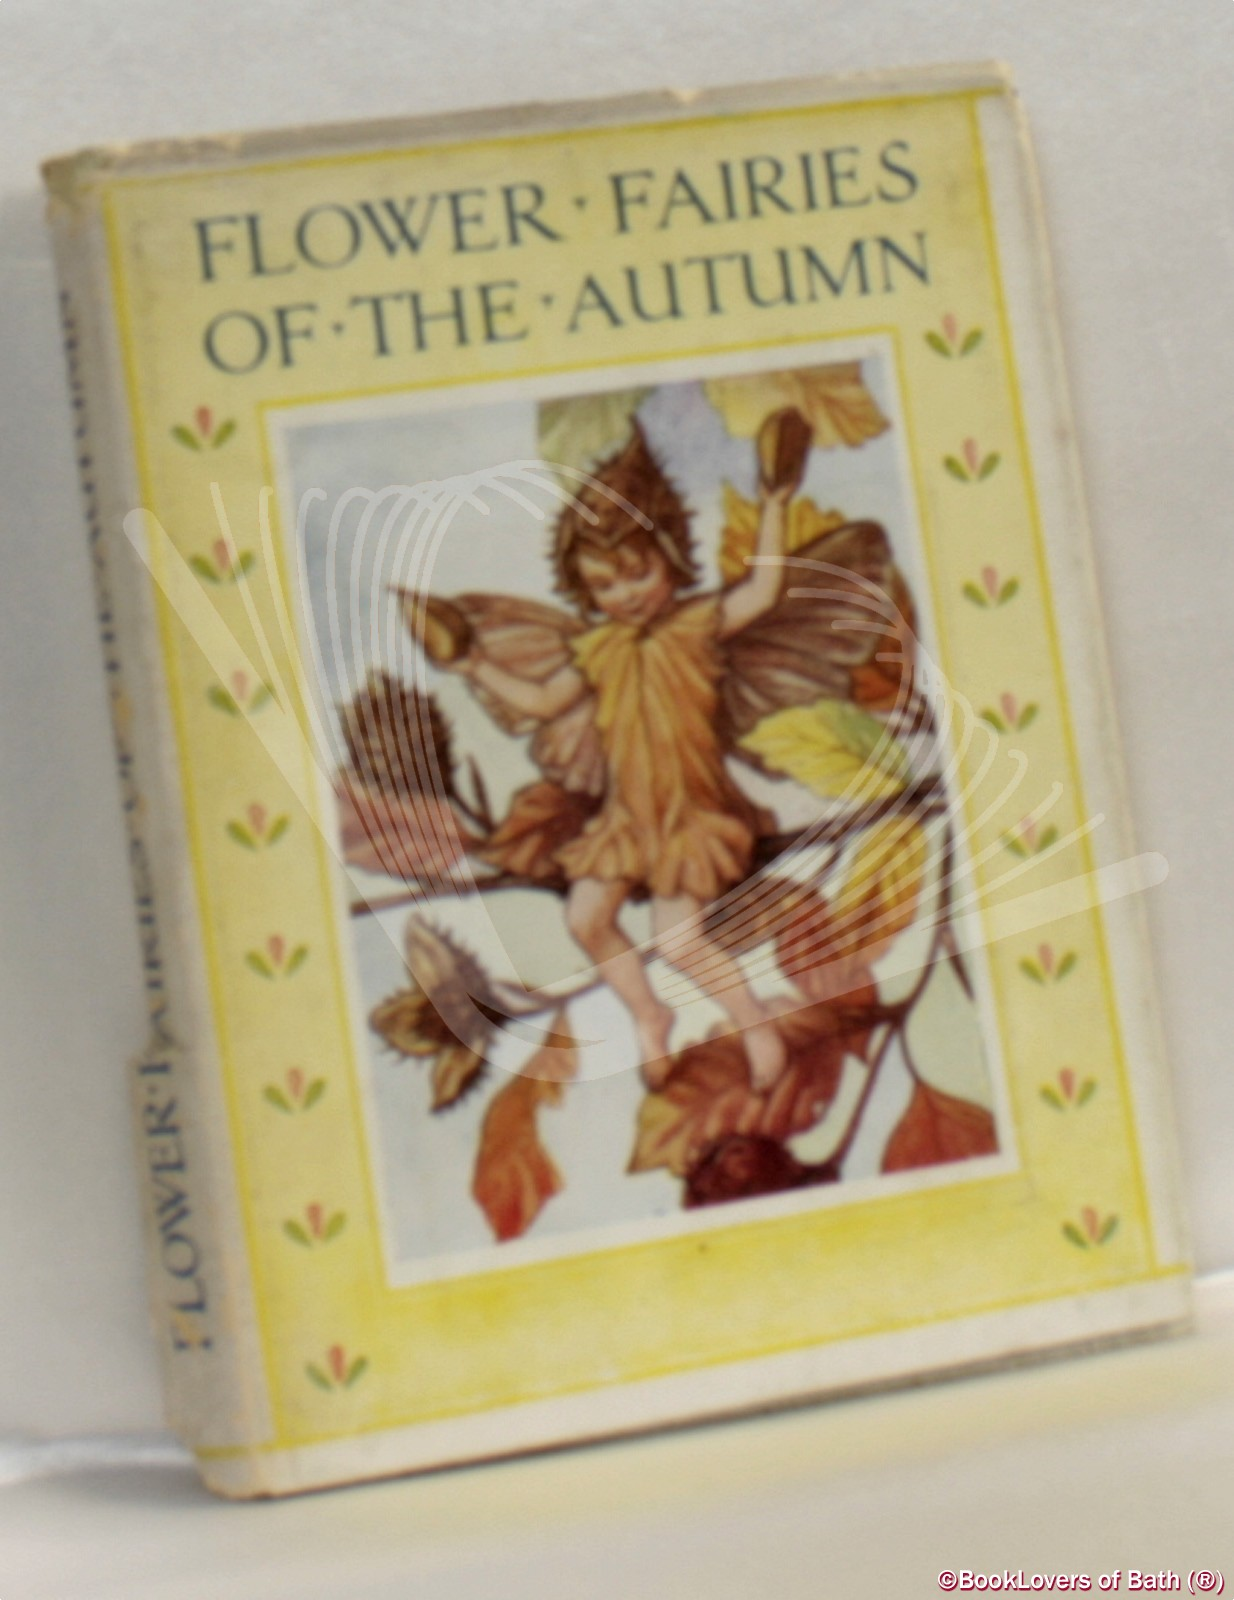 Flower Fairies of the Autumn: With the Nuts and Berries They Bring - Cicely Mary Barker